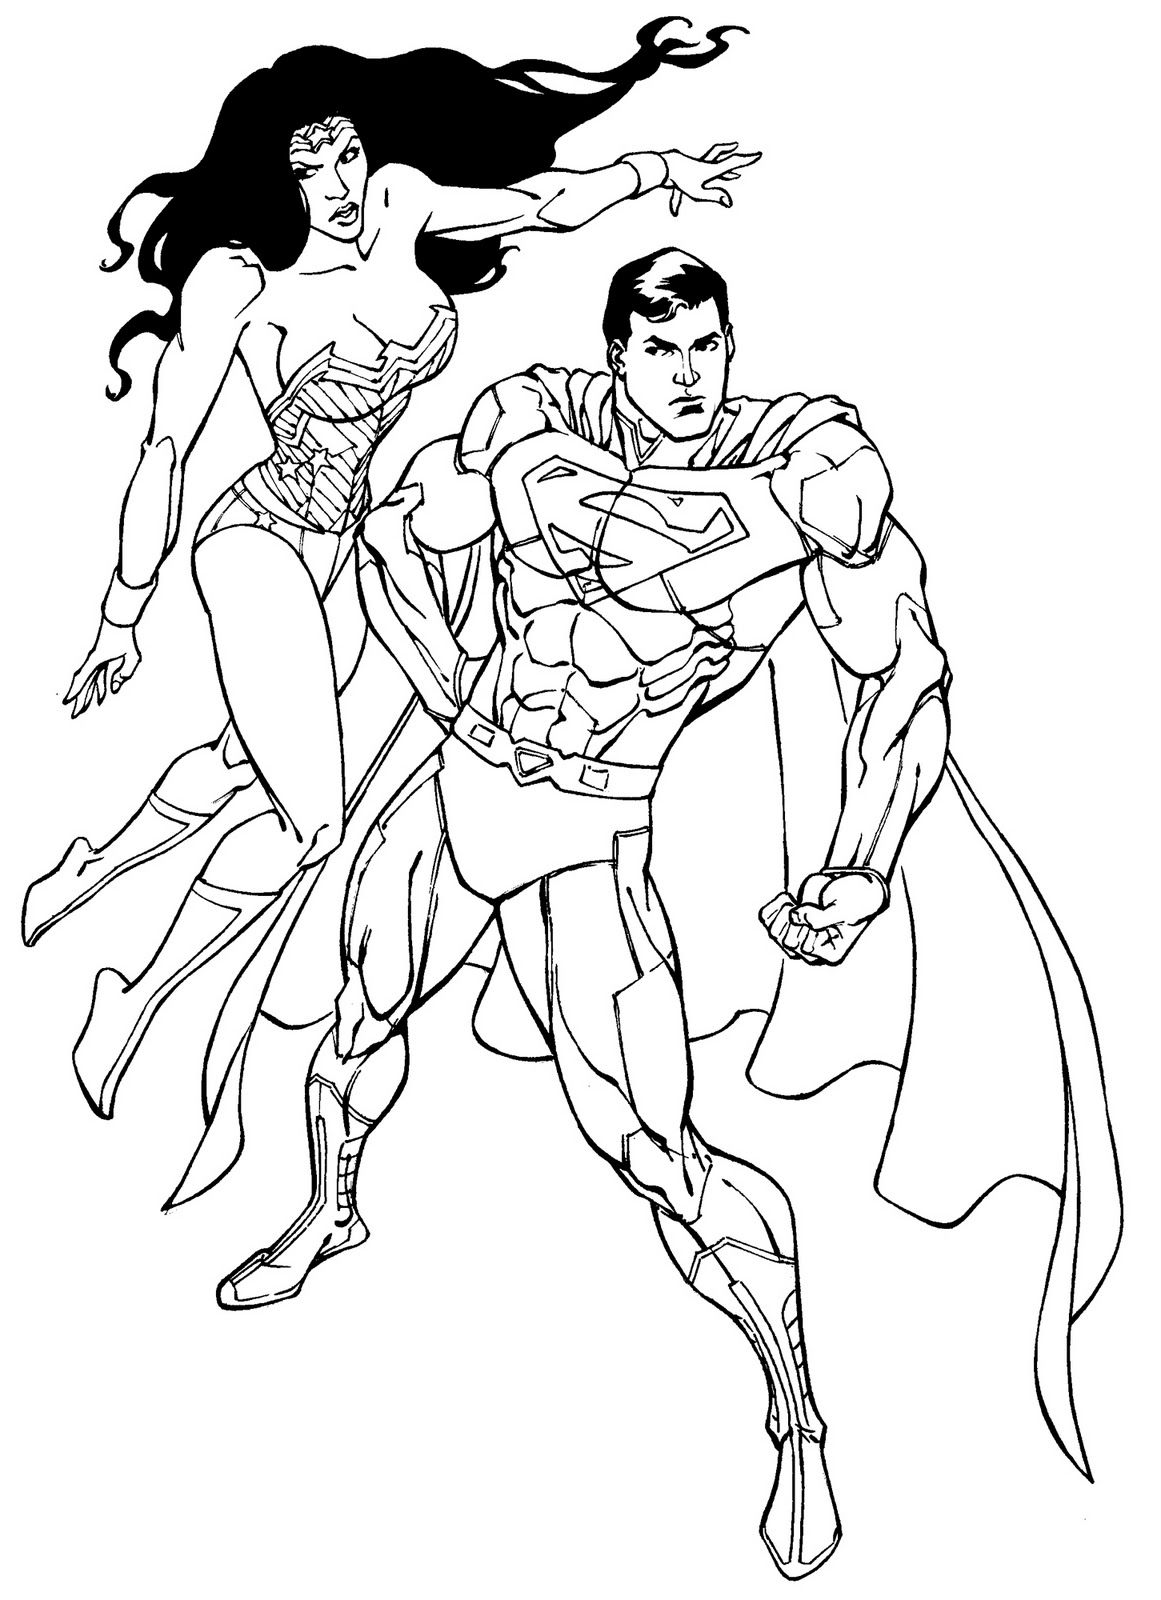 If you want to print the Printable Colouring Sheets Superhero